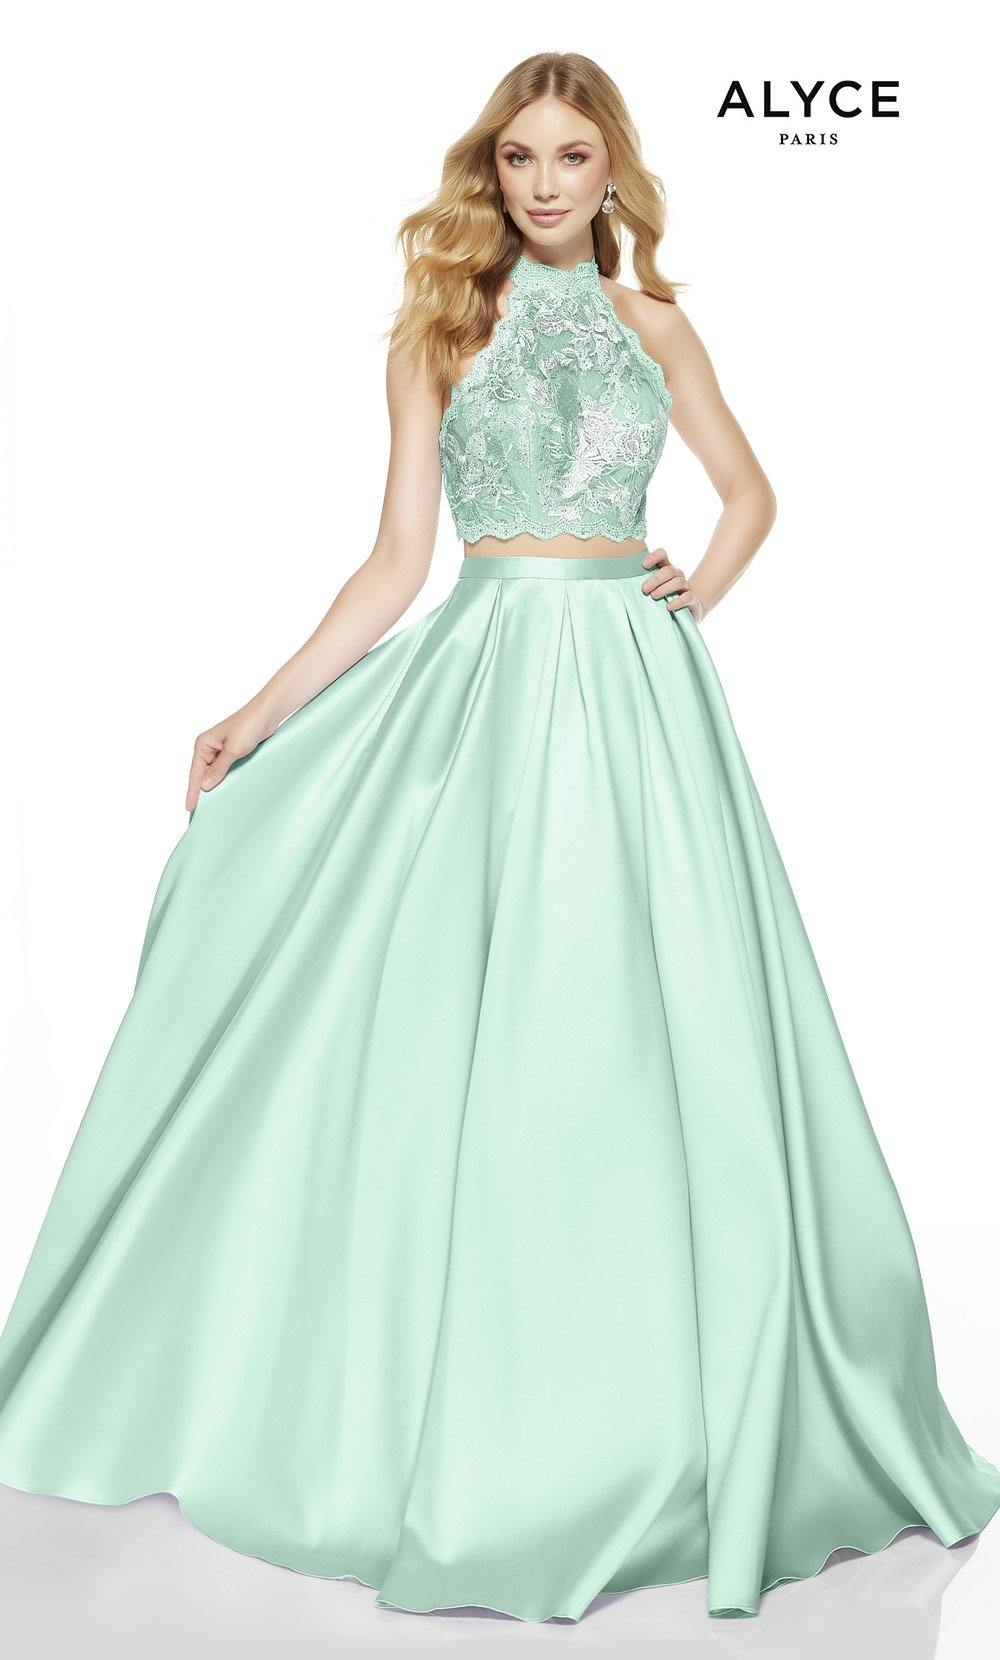 Sea Glass-Malibu two piece prom dress with a scalloped halter top